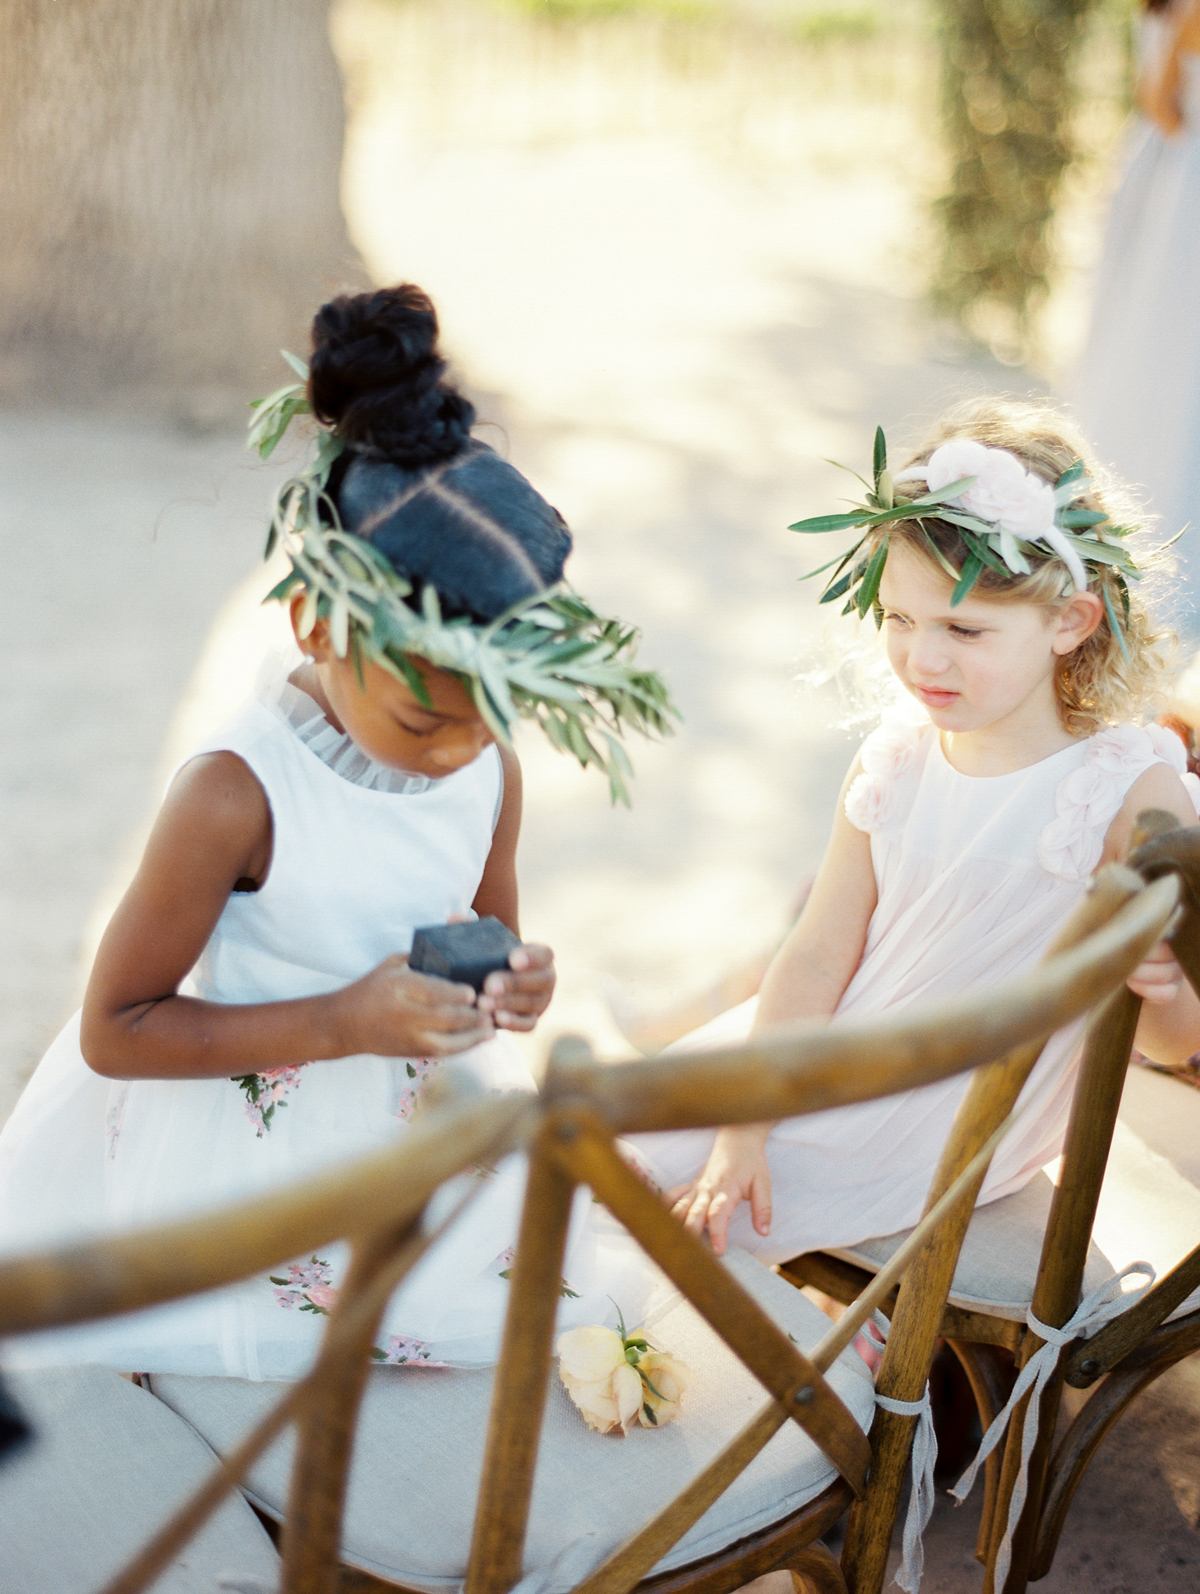 flower girls wearing white dresses and olive leaf crowns